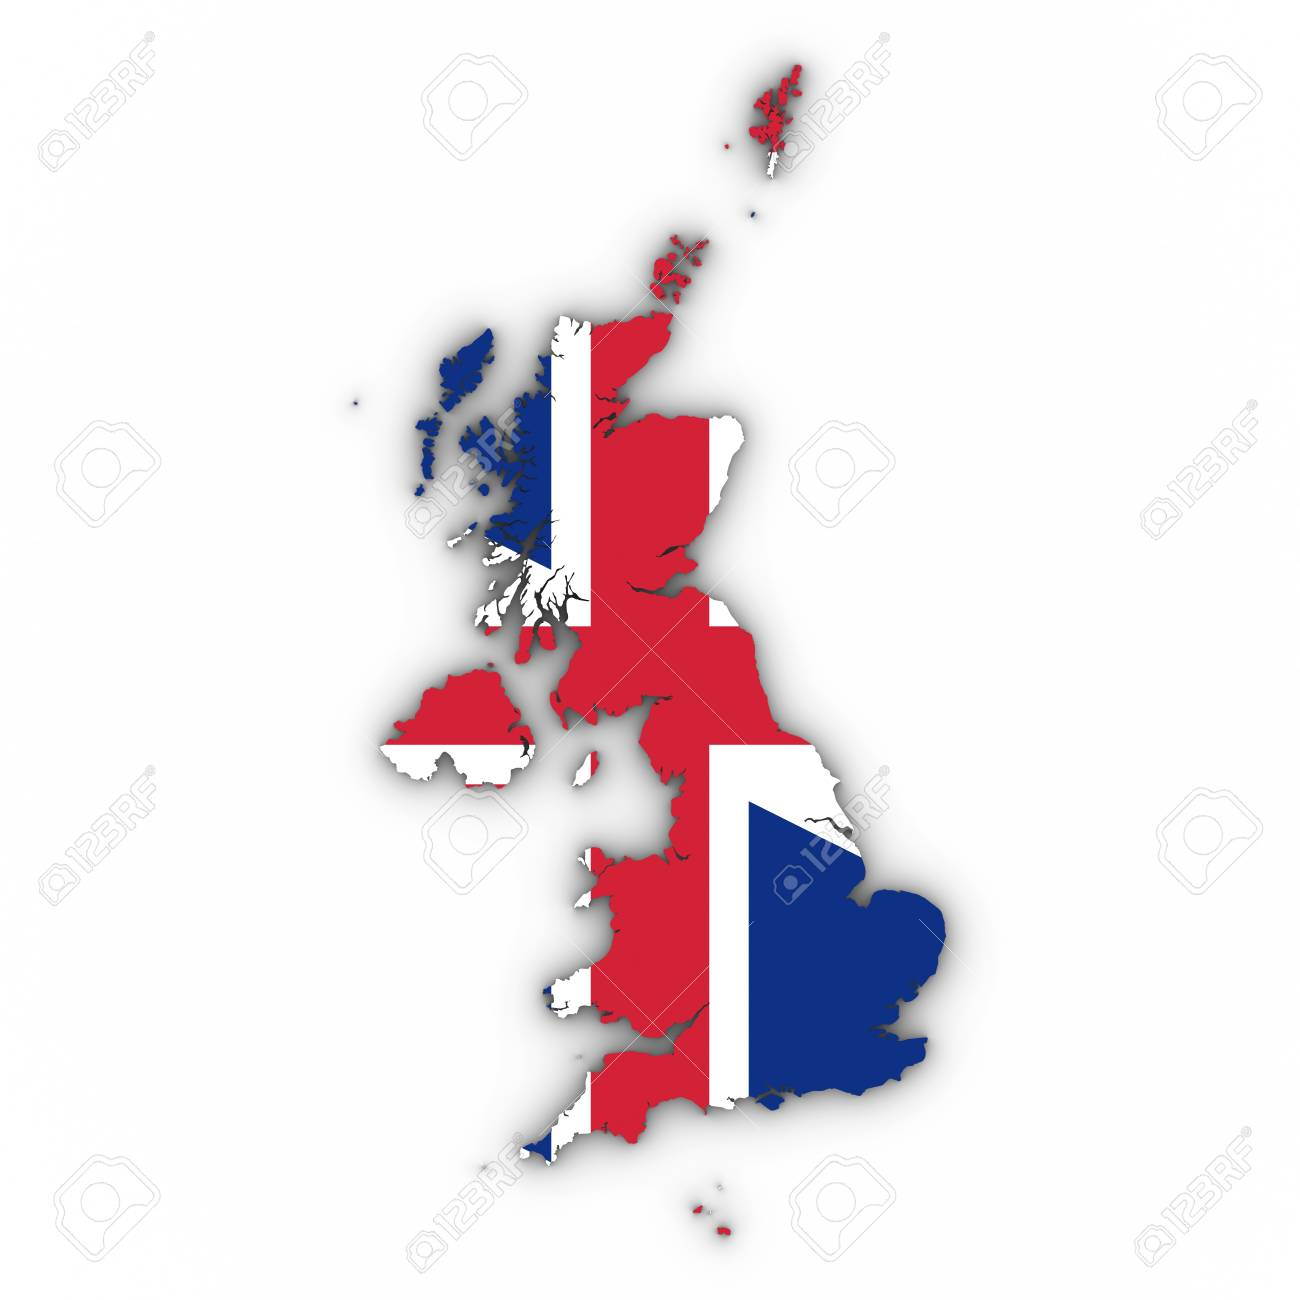 Uk Map Outline United Kingdom Map Outline With British Flag On White With Shadows  Uk Map Outline